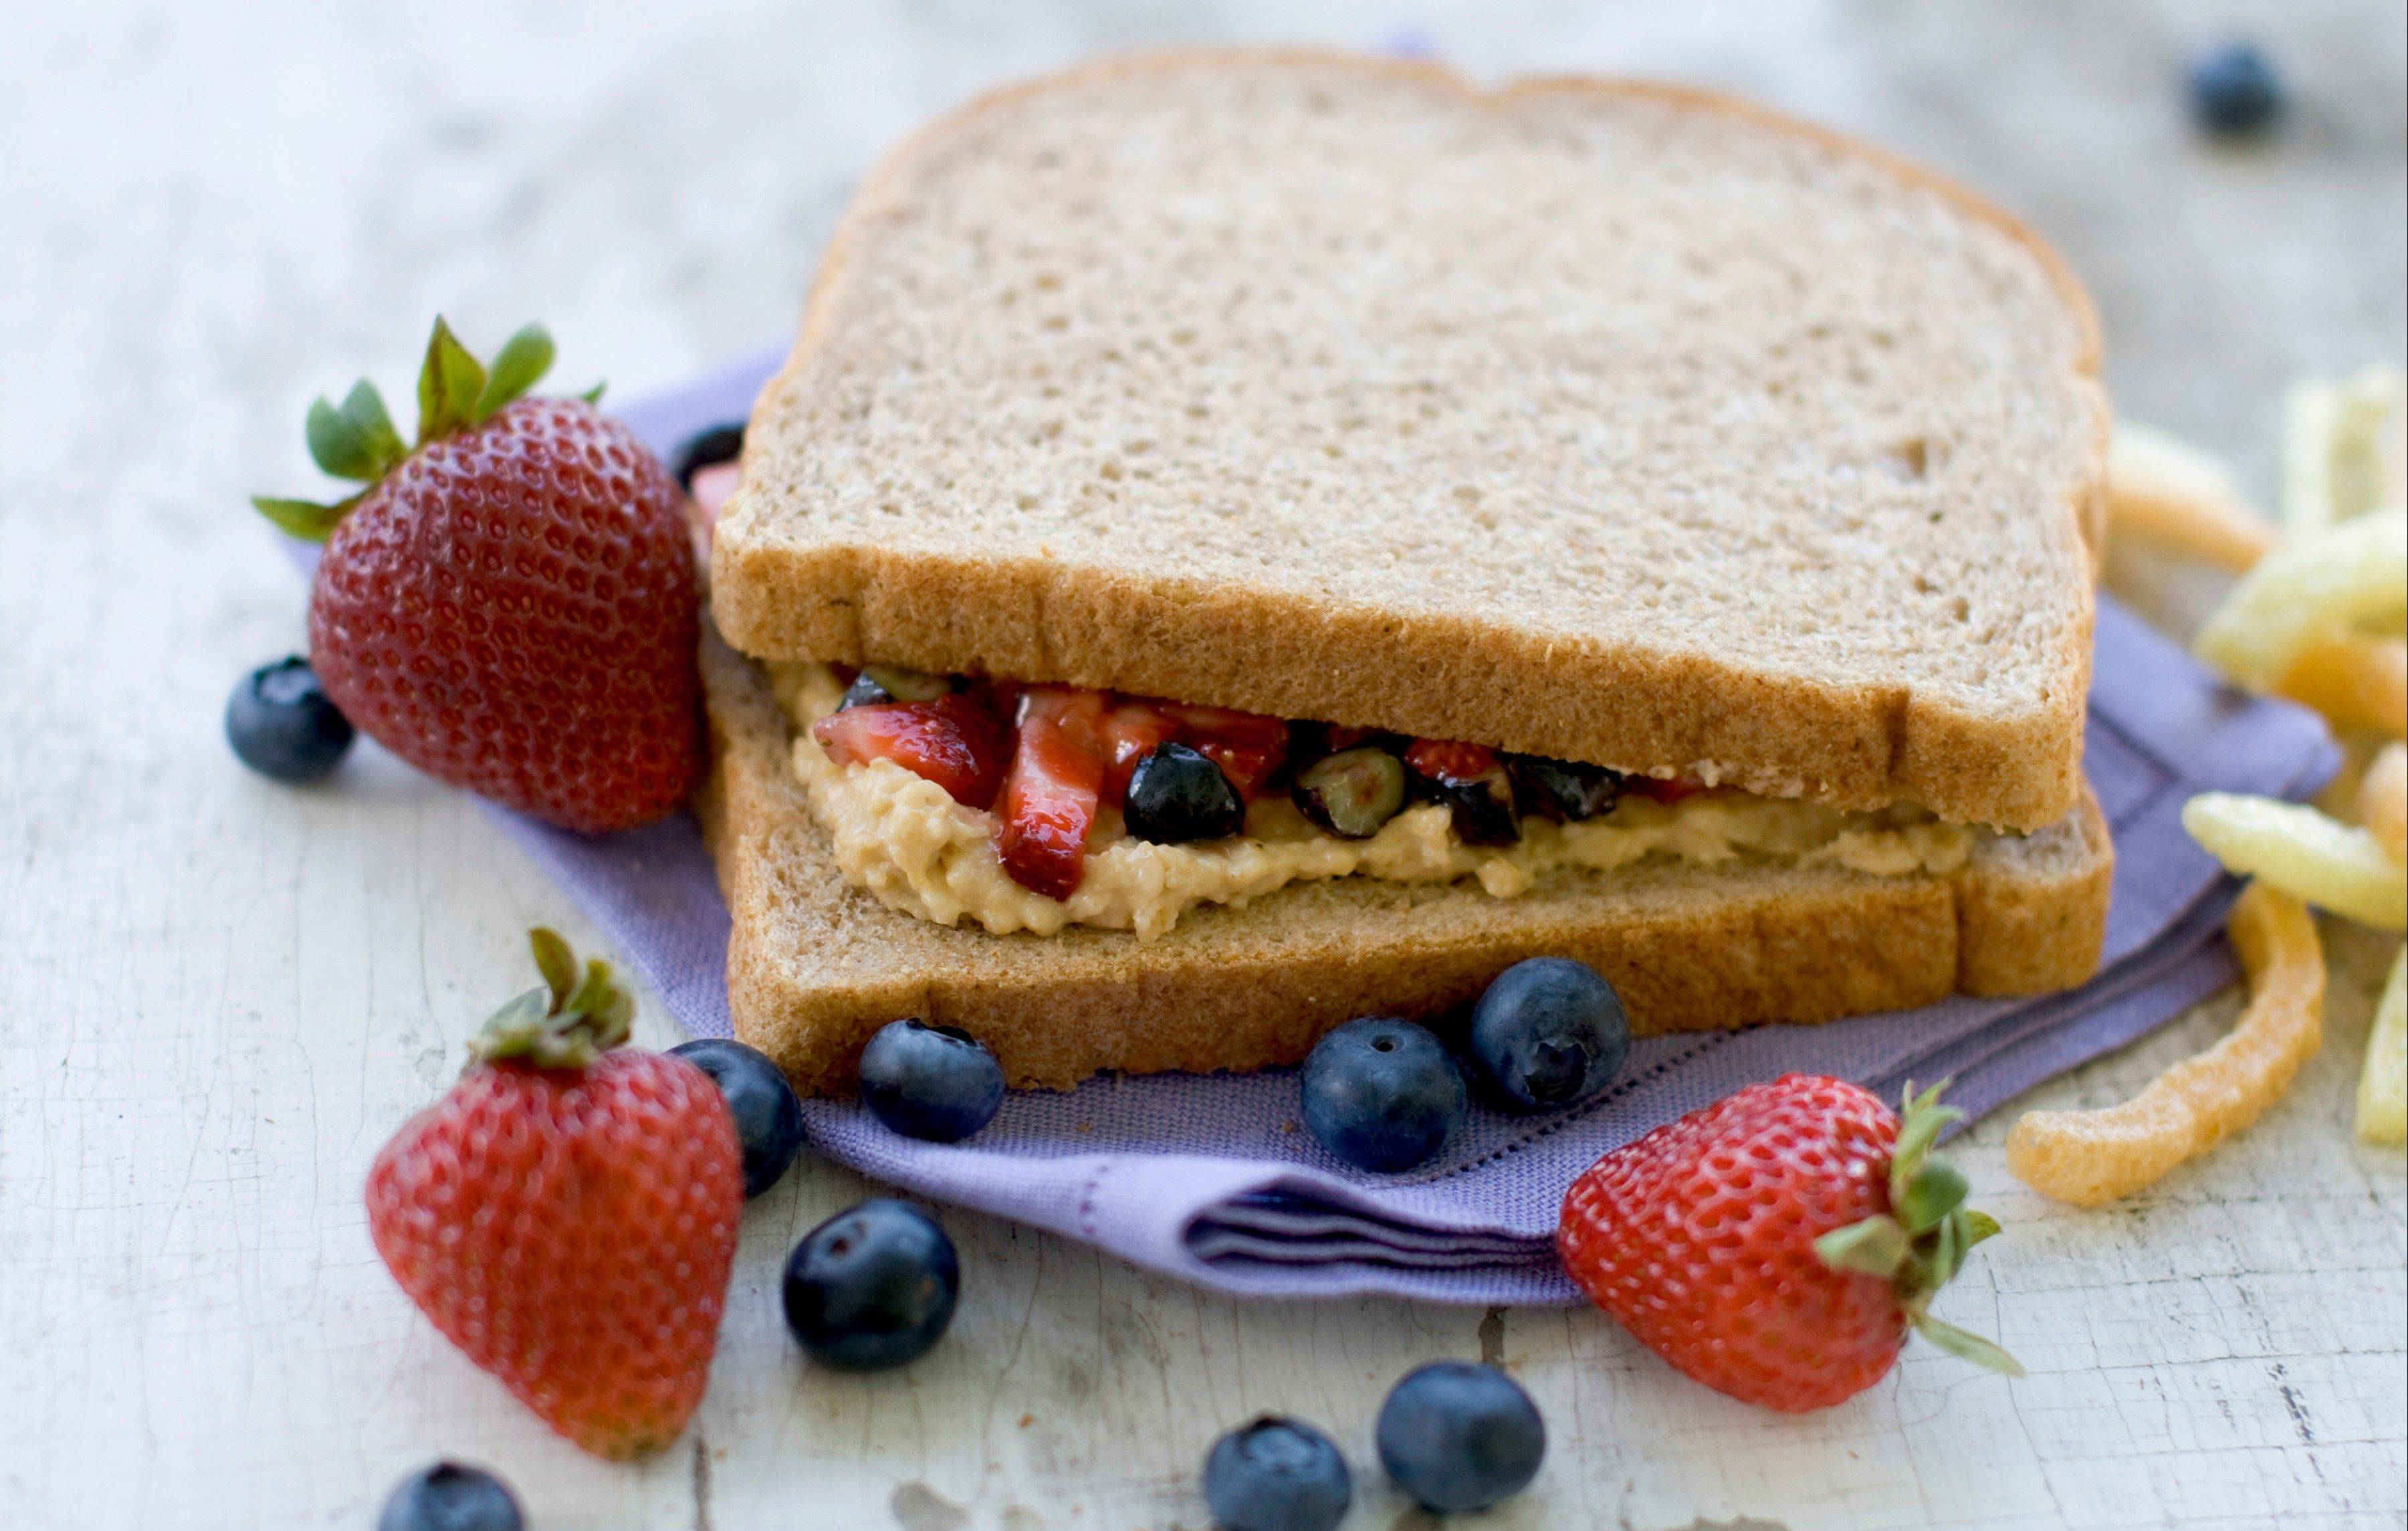 A healthier PB&J sandwich starts with whole grain bread.